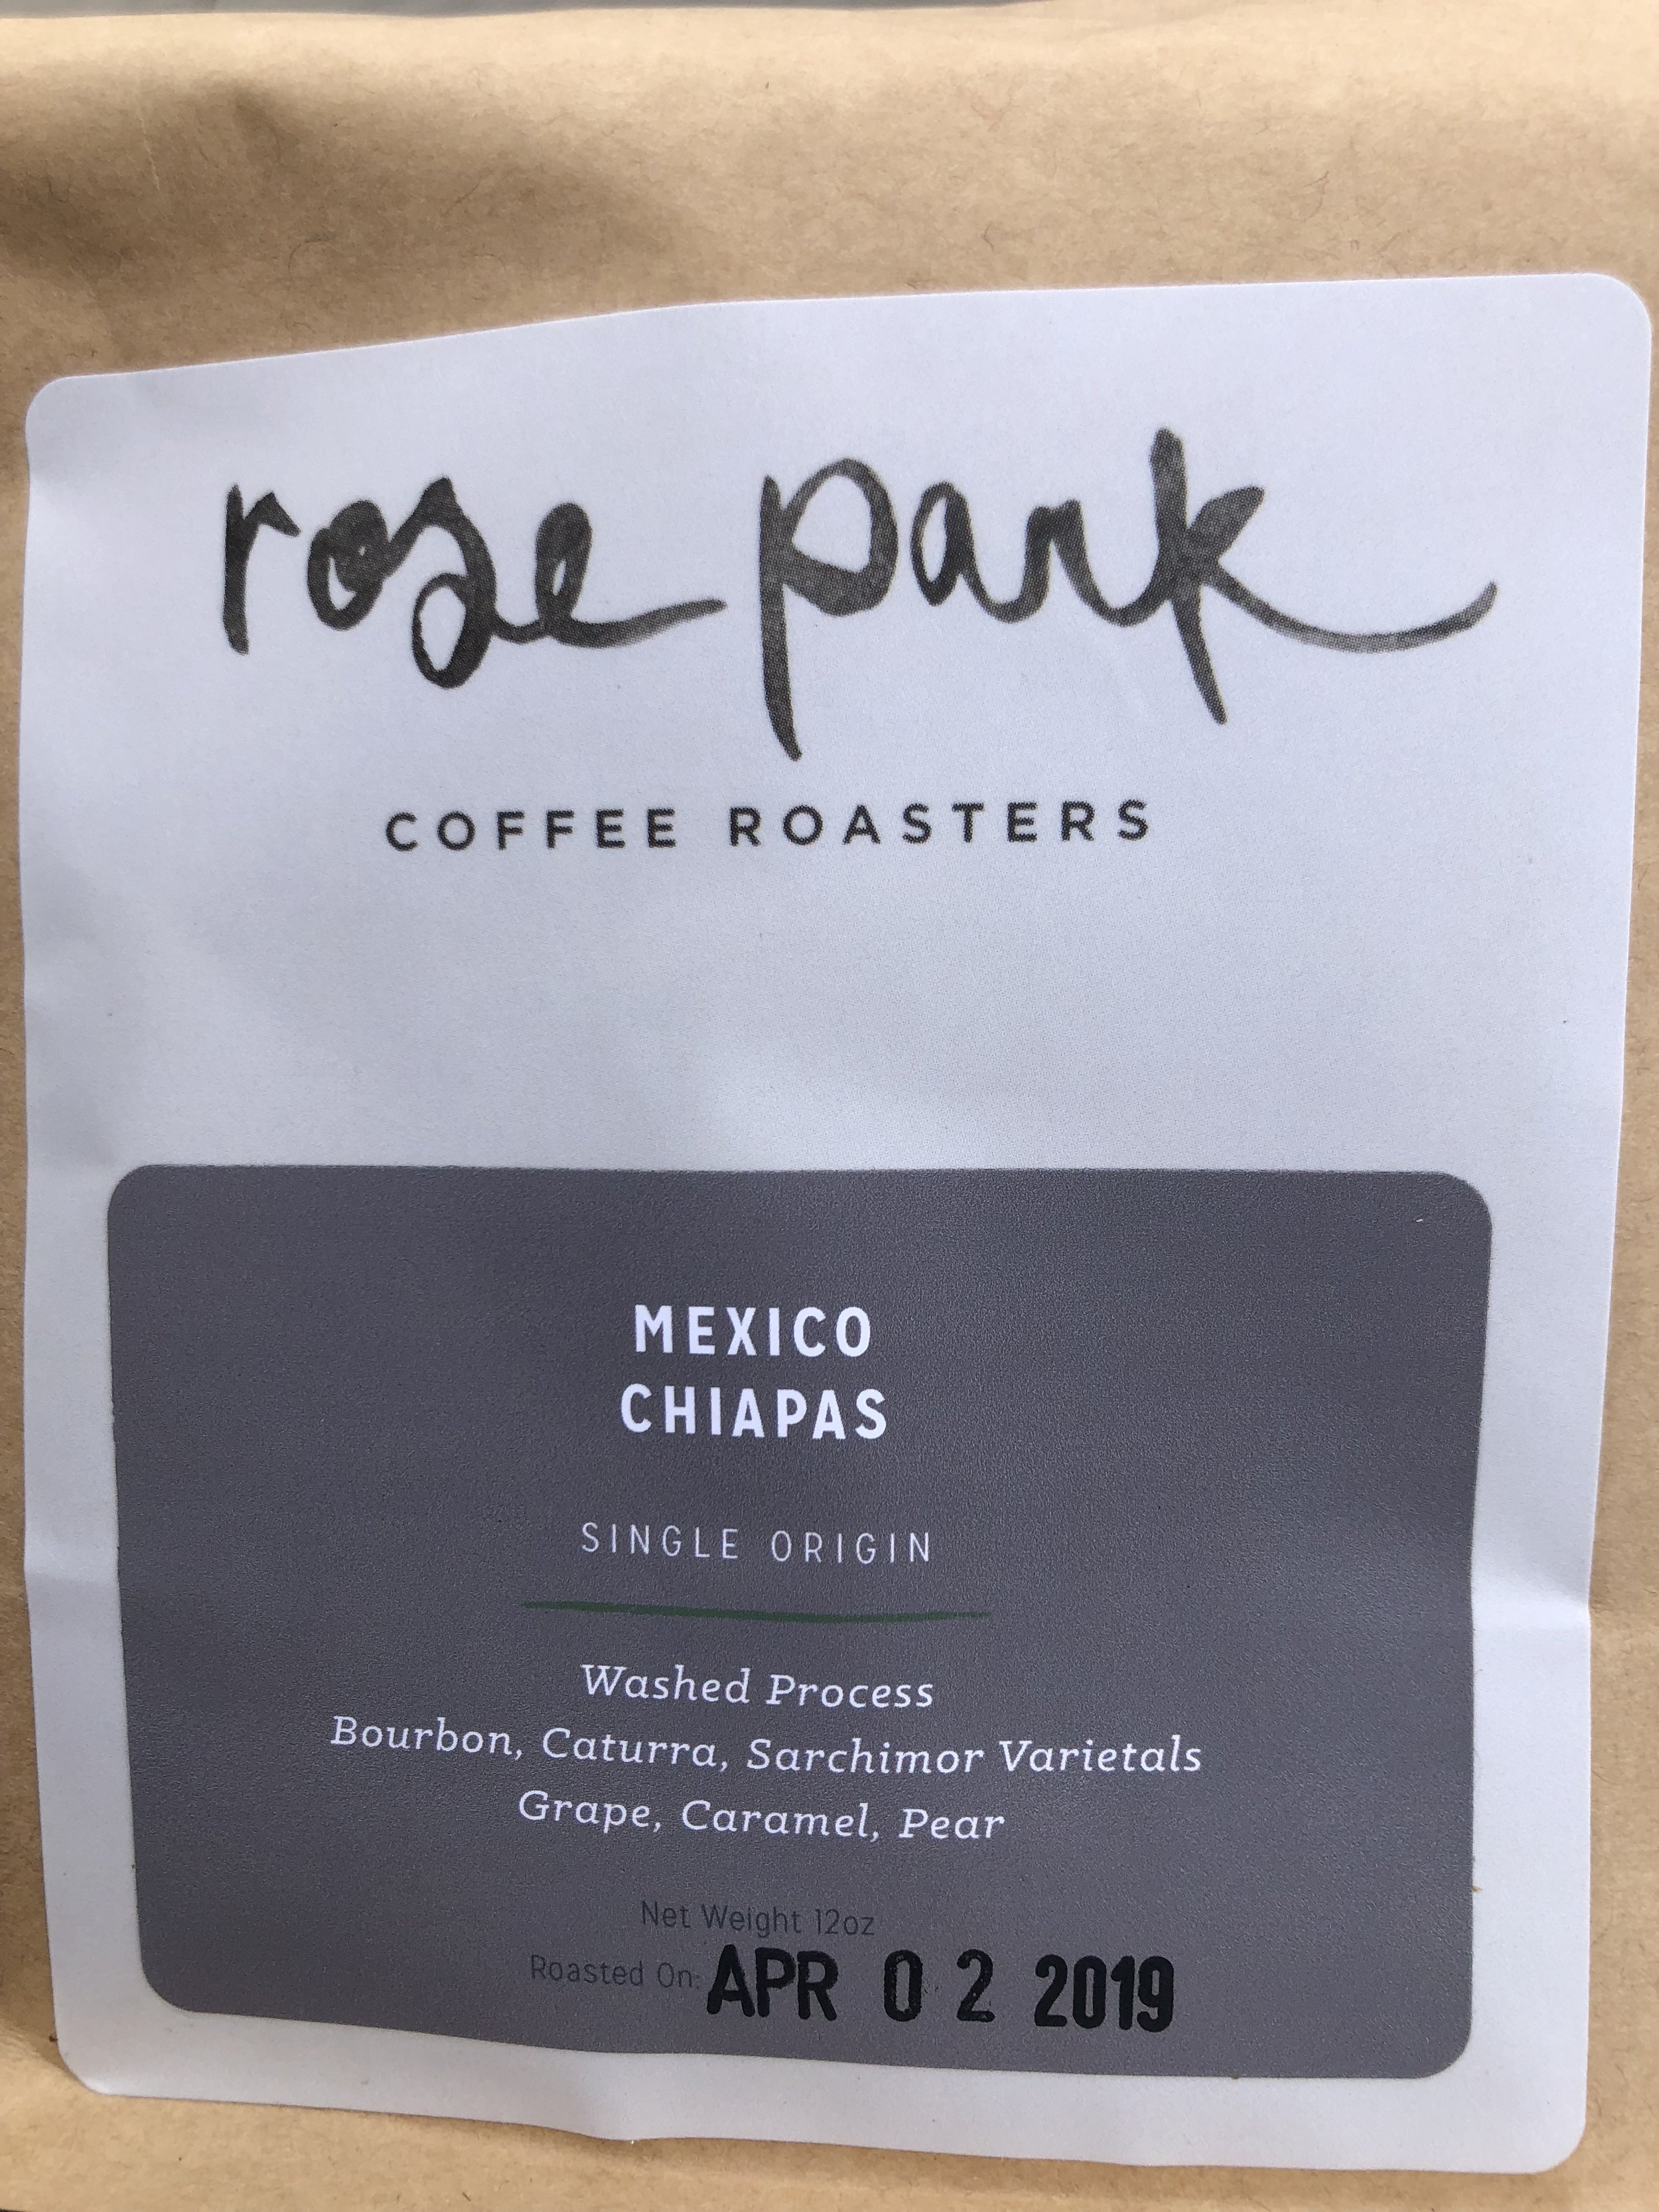 found a really cool coffee shop and roasting company called rose parks and i'm going to apply there today